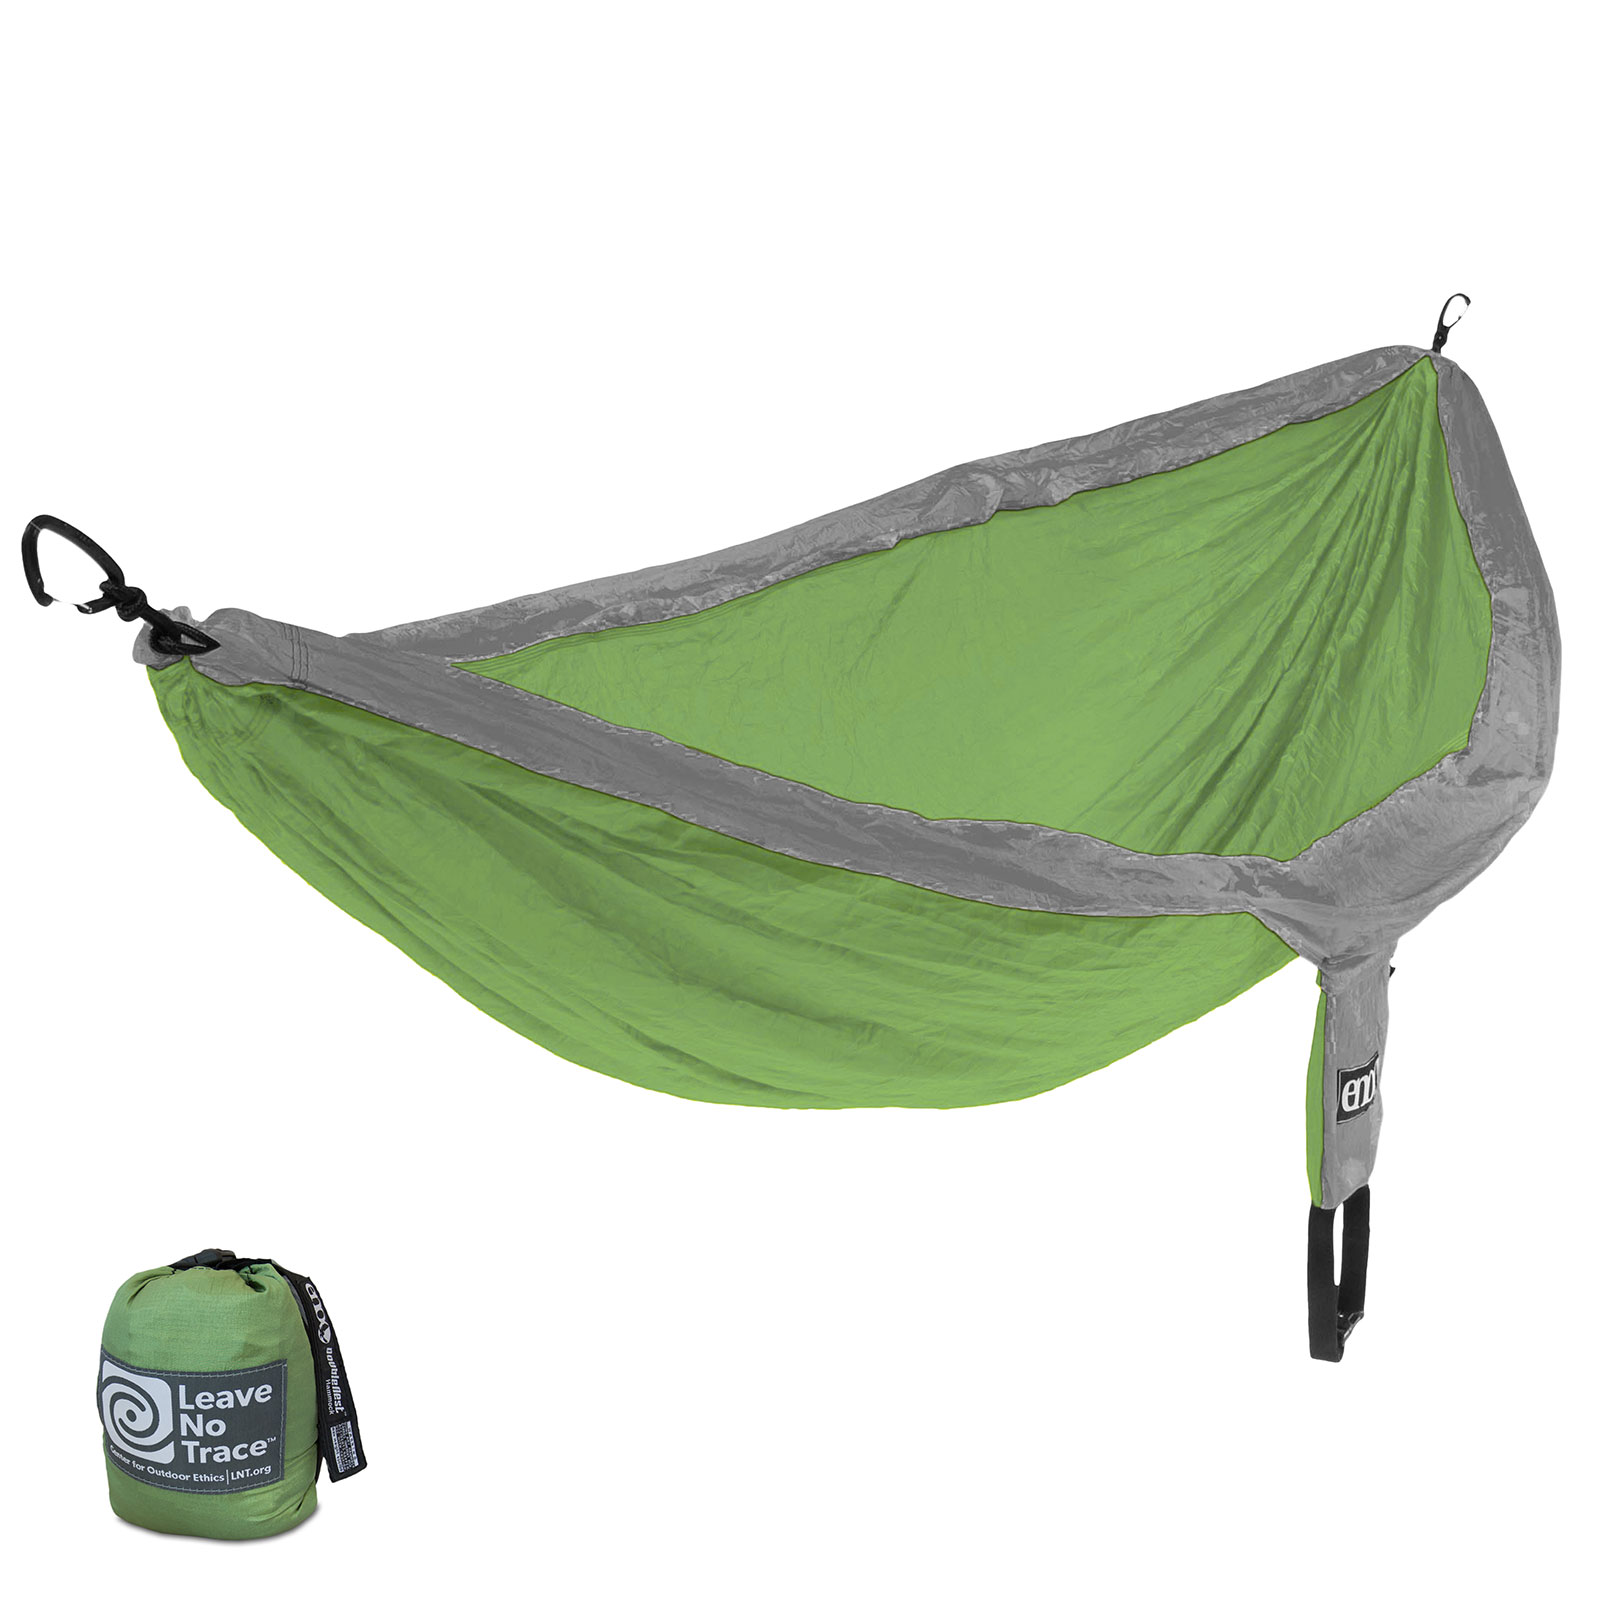 ENO DoubleNest Hammock Outdoor Camping Backpacking Nylon ...